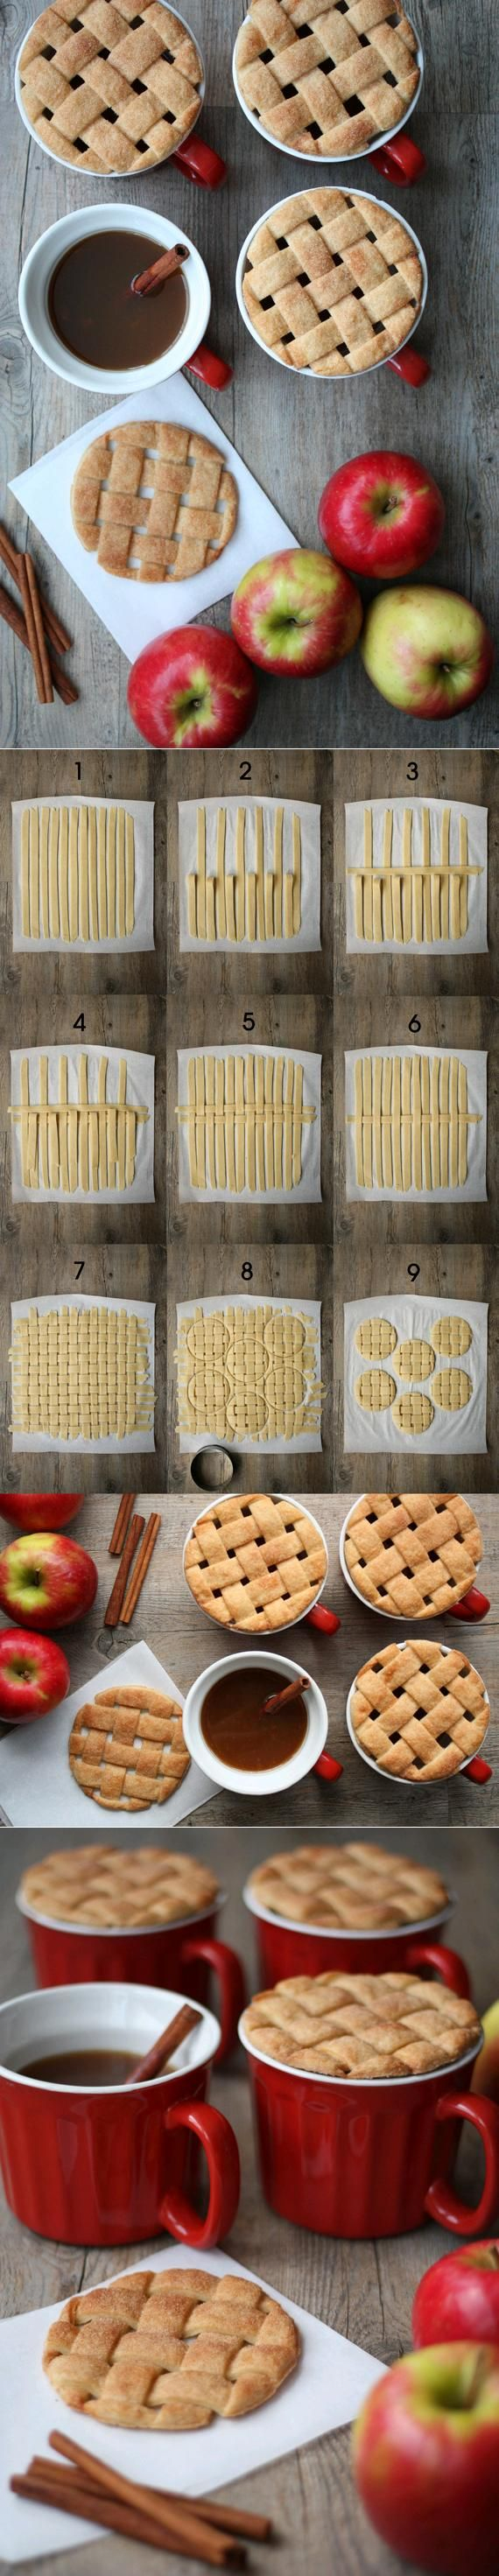 DIY Pie Mug Toppers DIY Projects